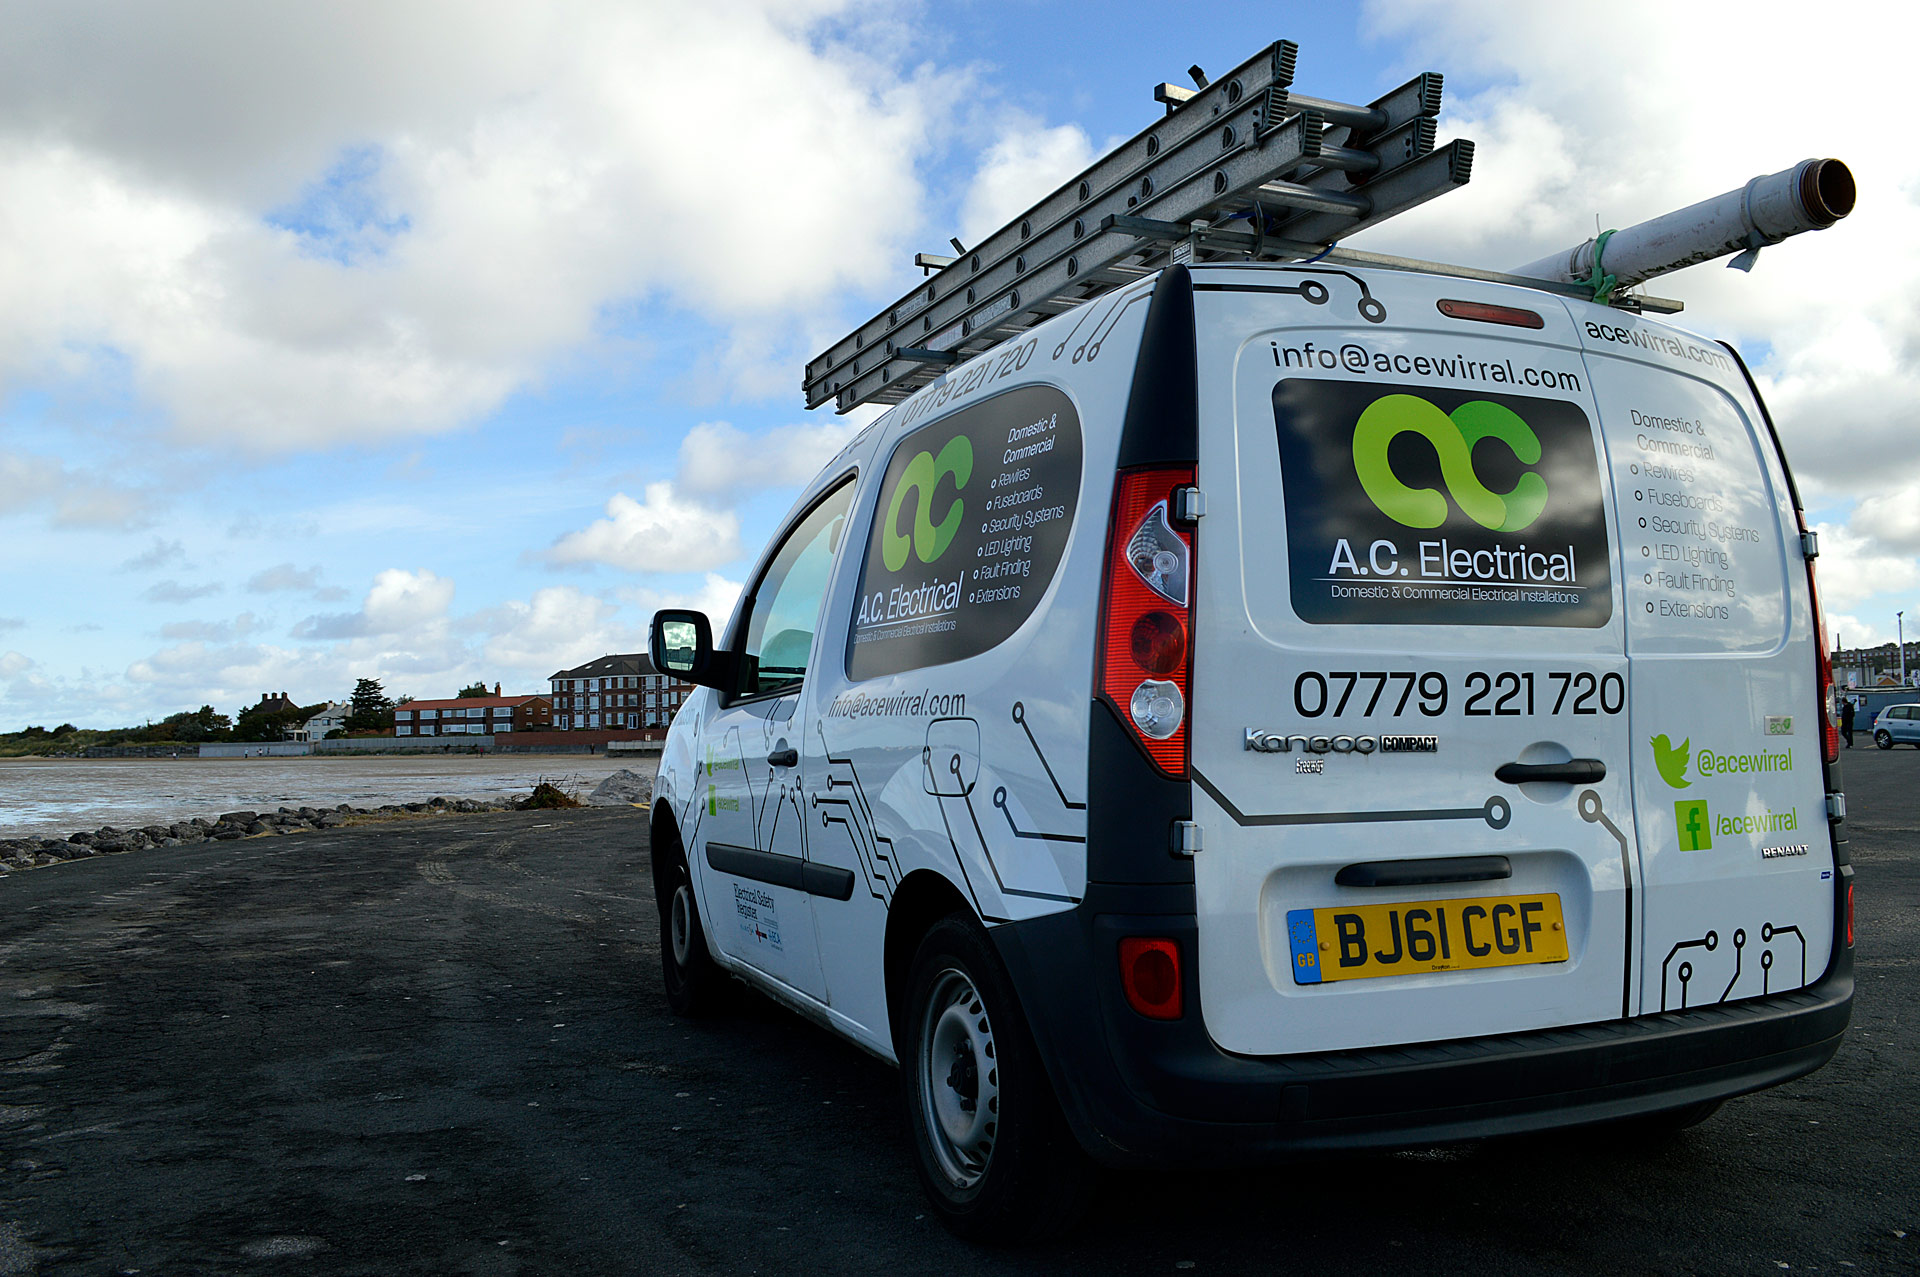 Work van overlooking west kirby seafront